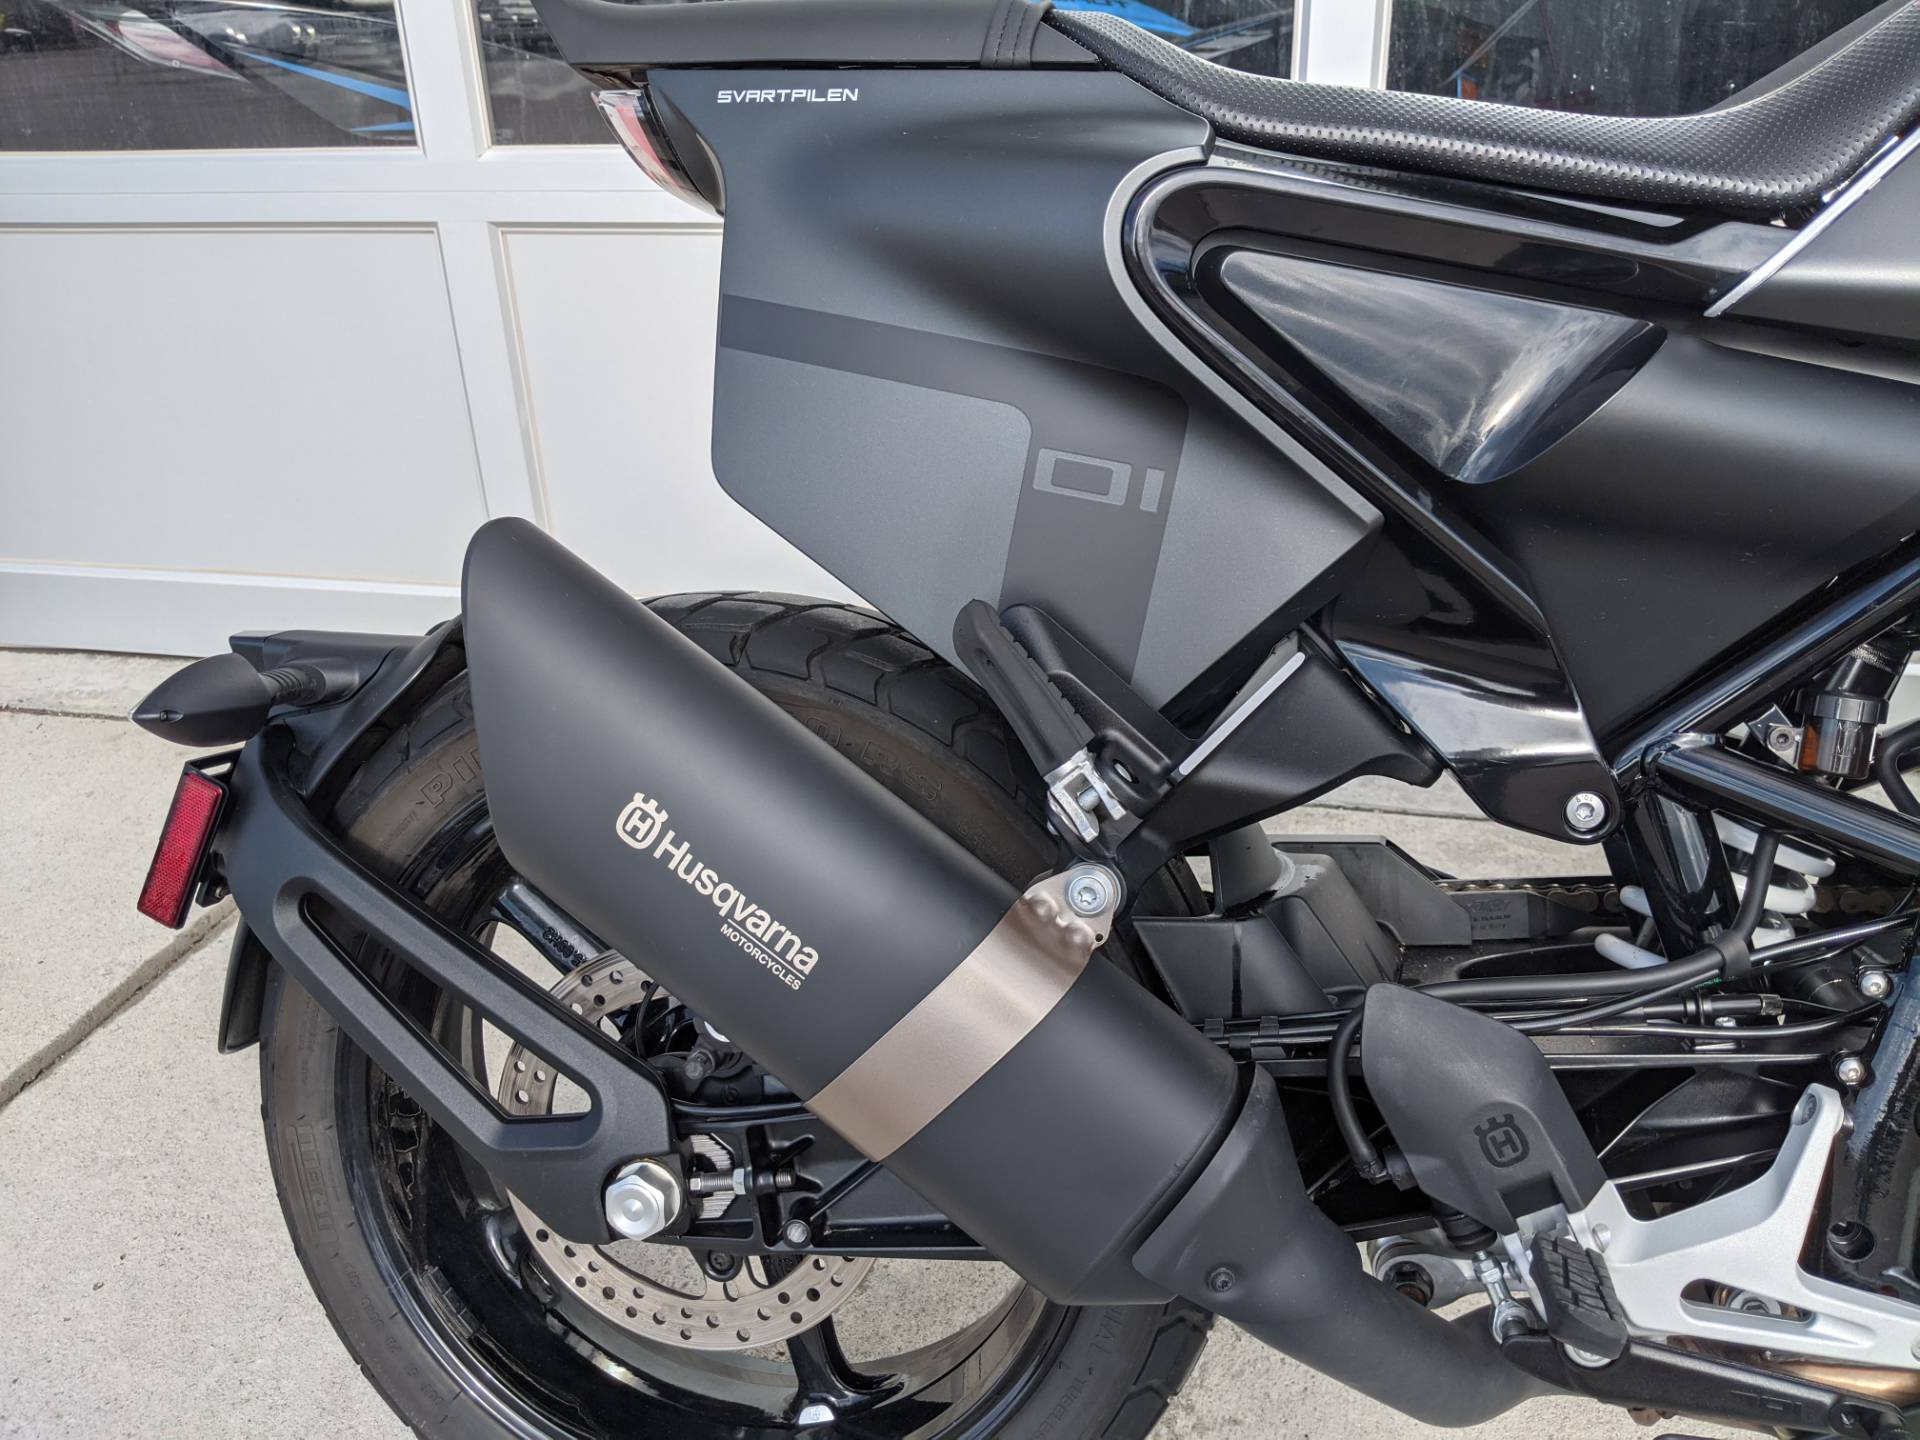 2019 Husqvarna Svartpilen 701 in Rapid City, South Dakota - Photo 7